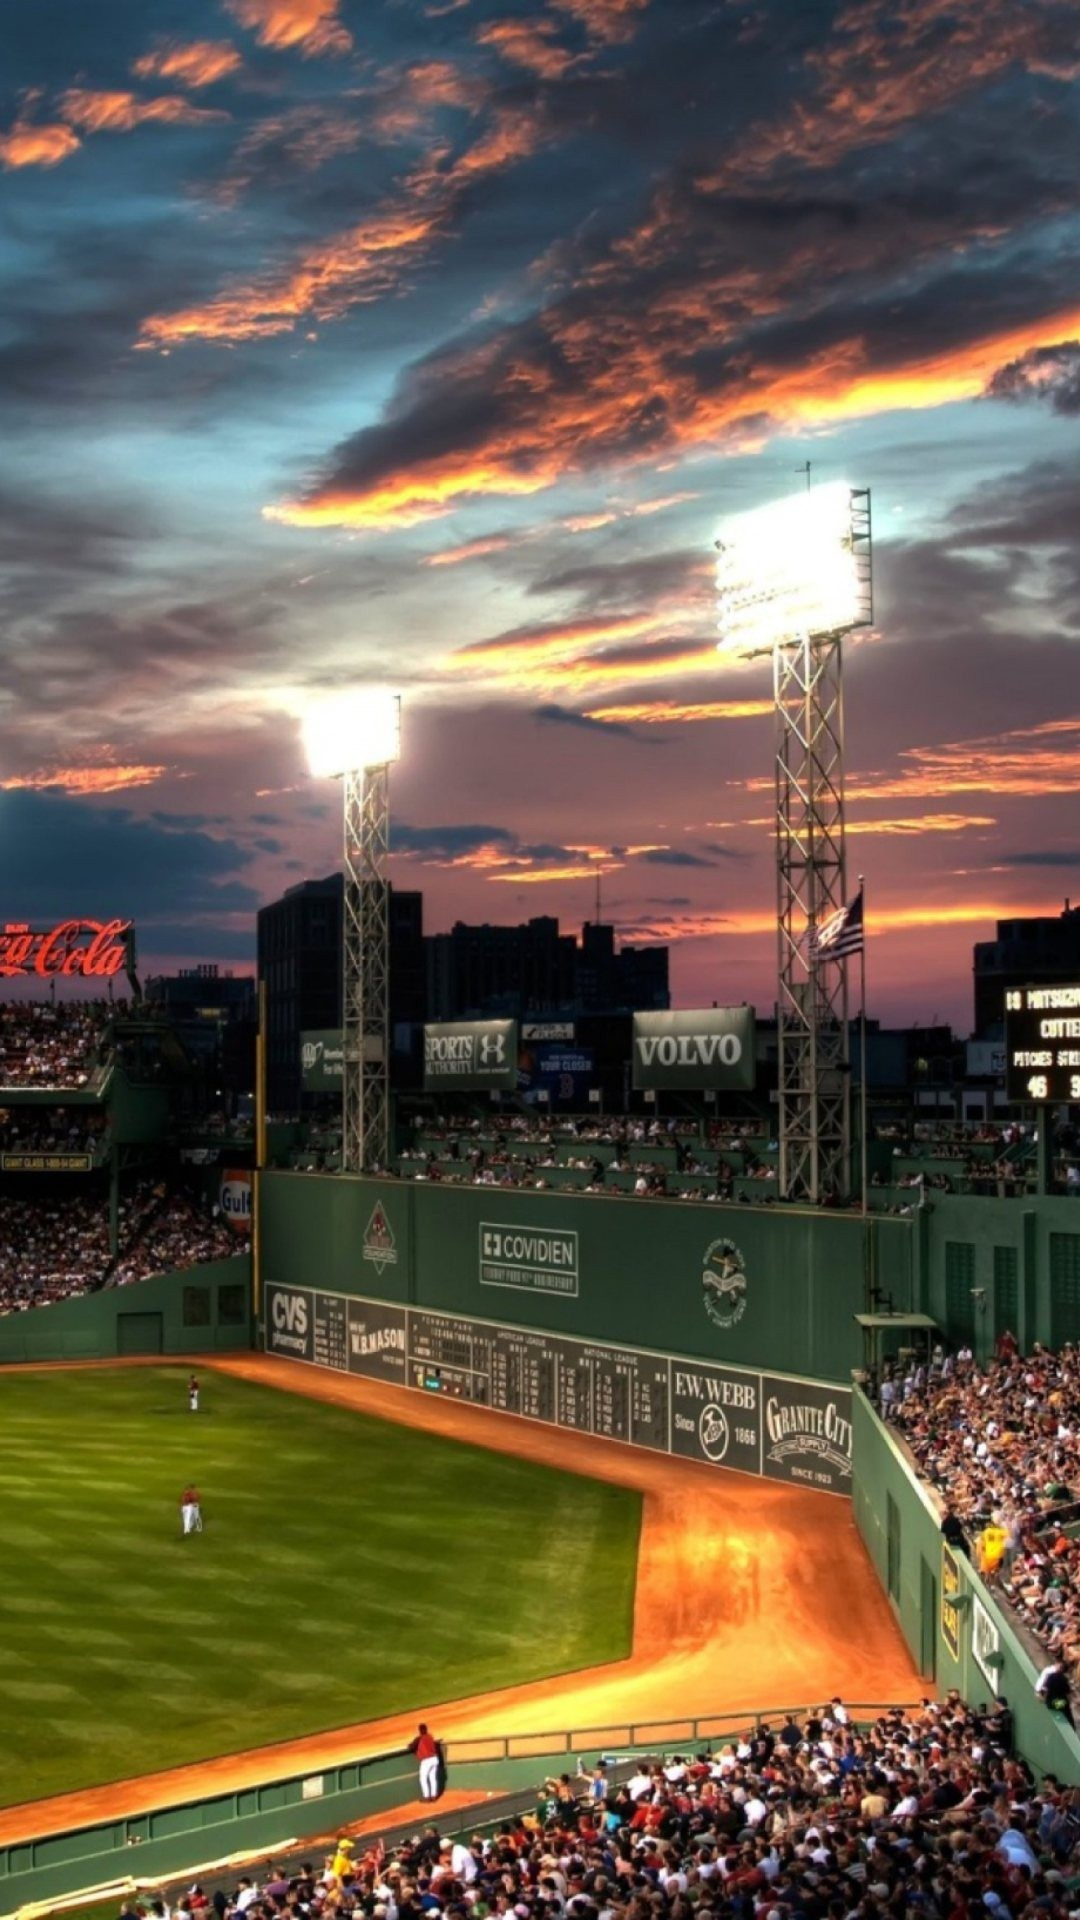 Boston red sox iphone wallpaper 70 images - Red sox iphone background ...